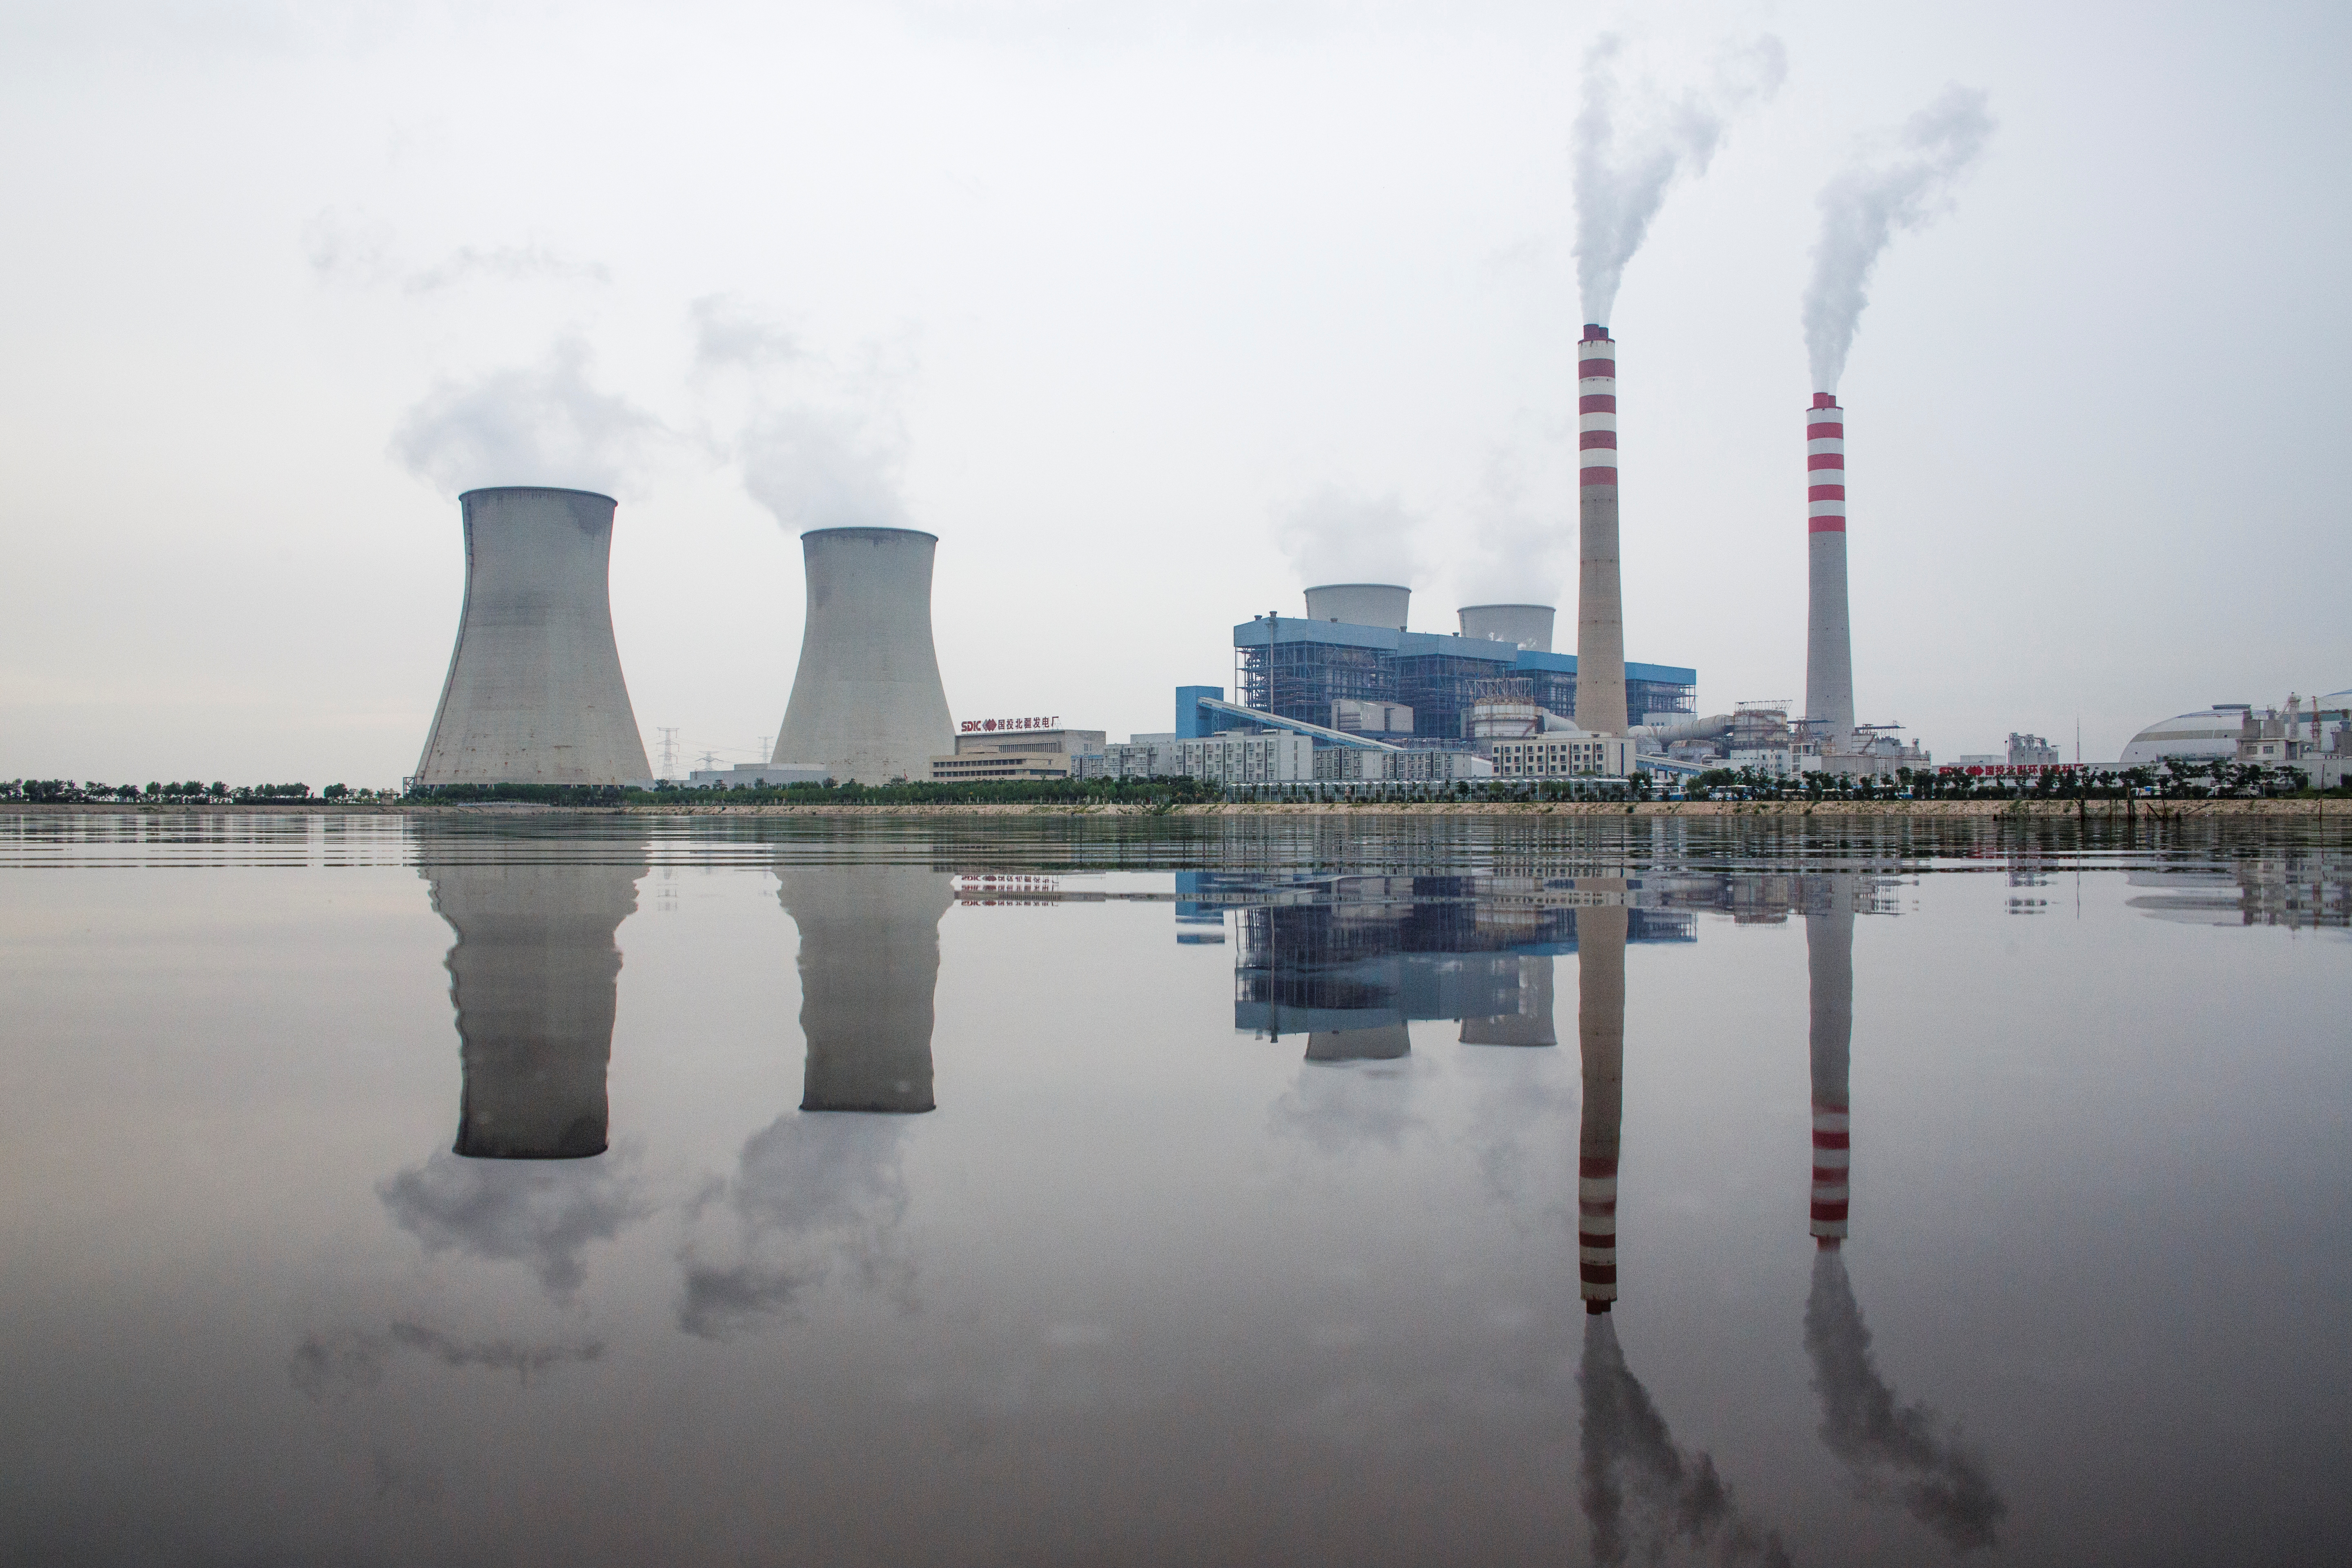 A power station of the State Development & Investment Corporation (SDIC) is reflected in a lake in Tangshan, Hebei province, China, August 22, 2018.  REUTERS/Thomas Peter